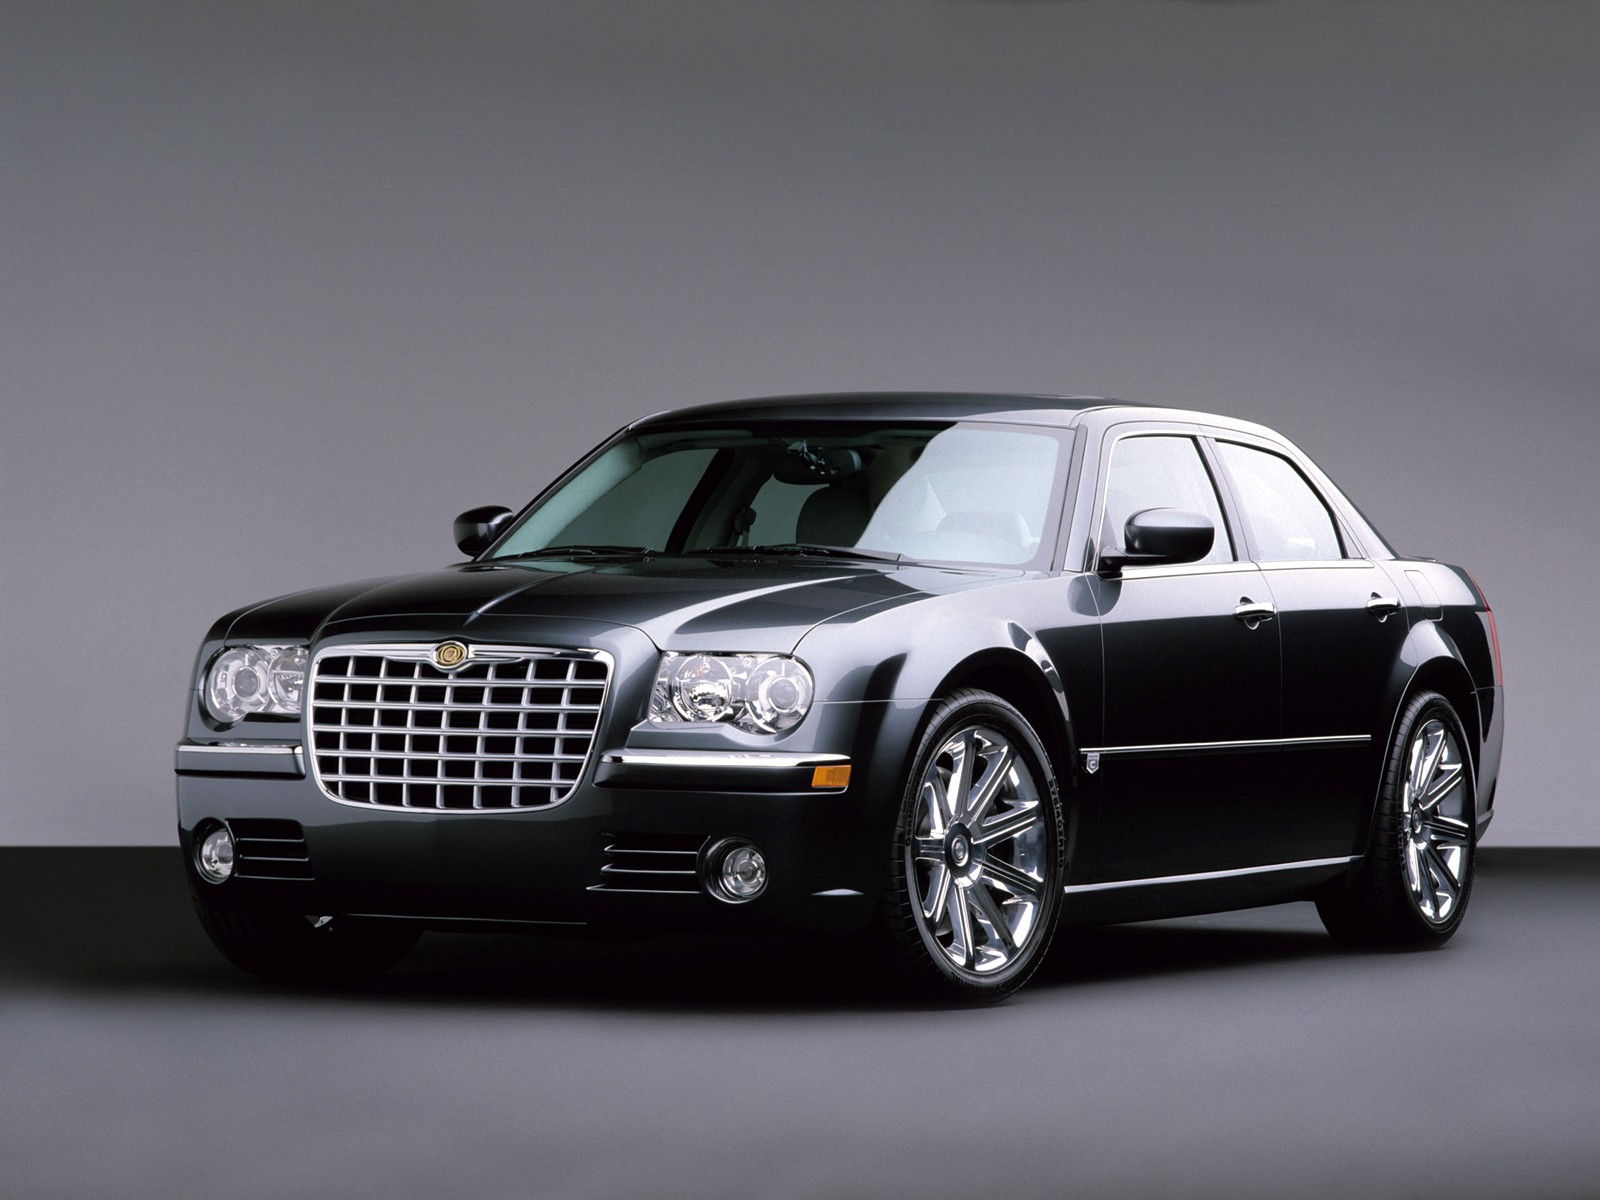 Chrysler 300M black #4